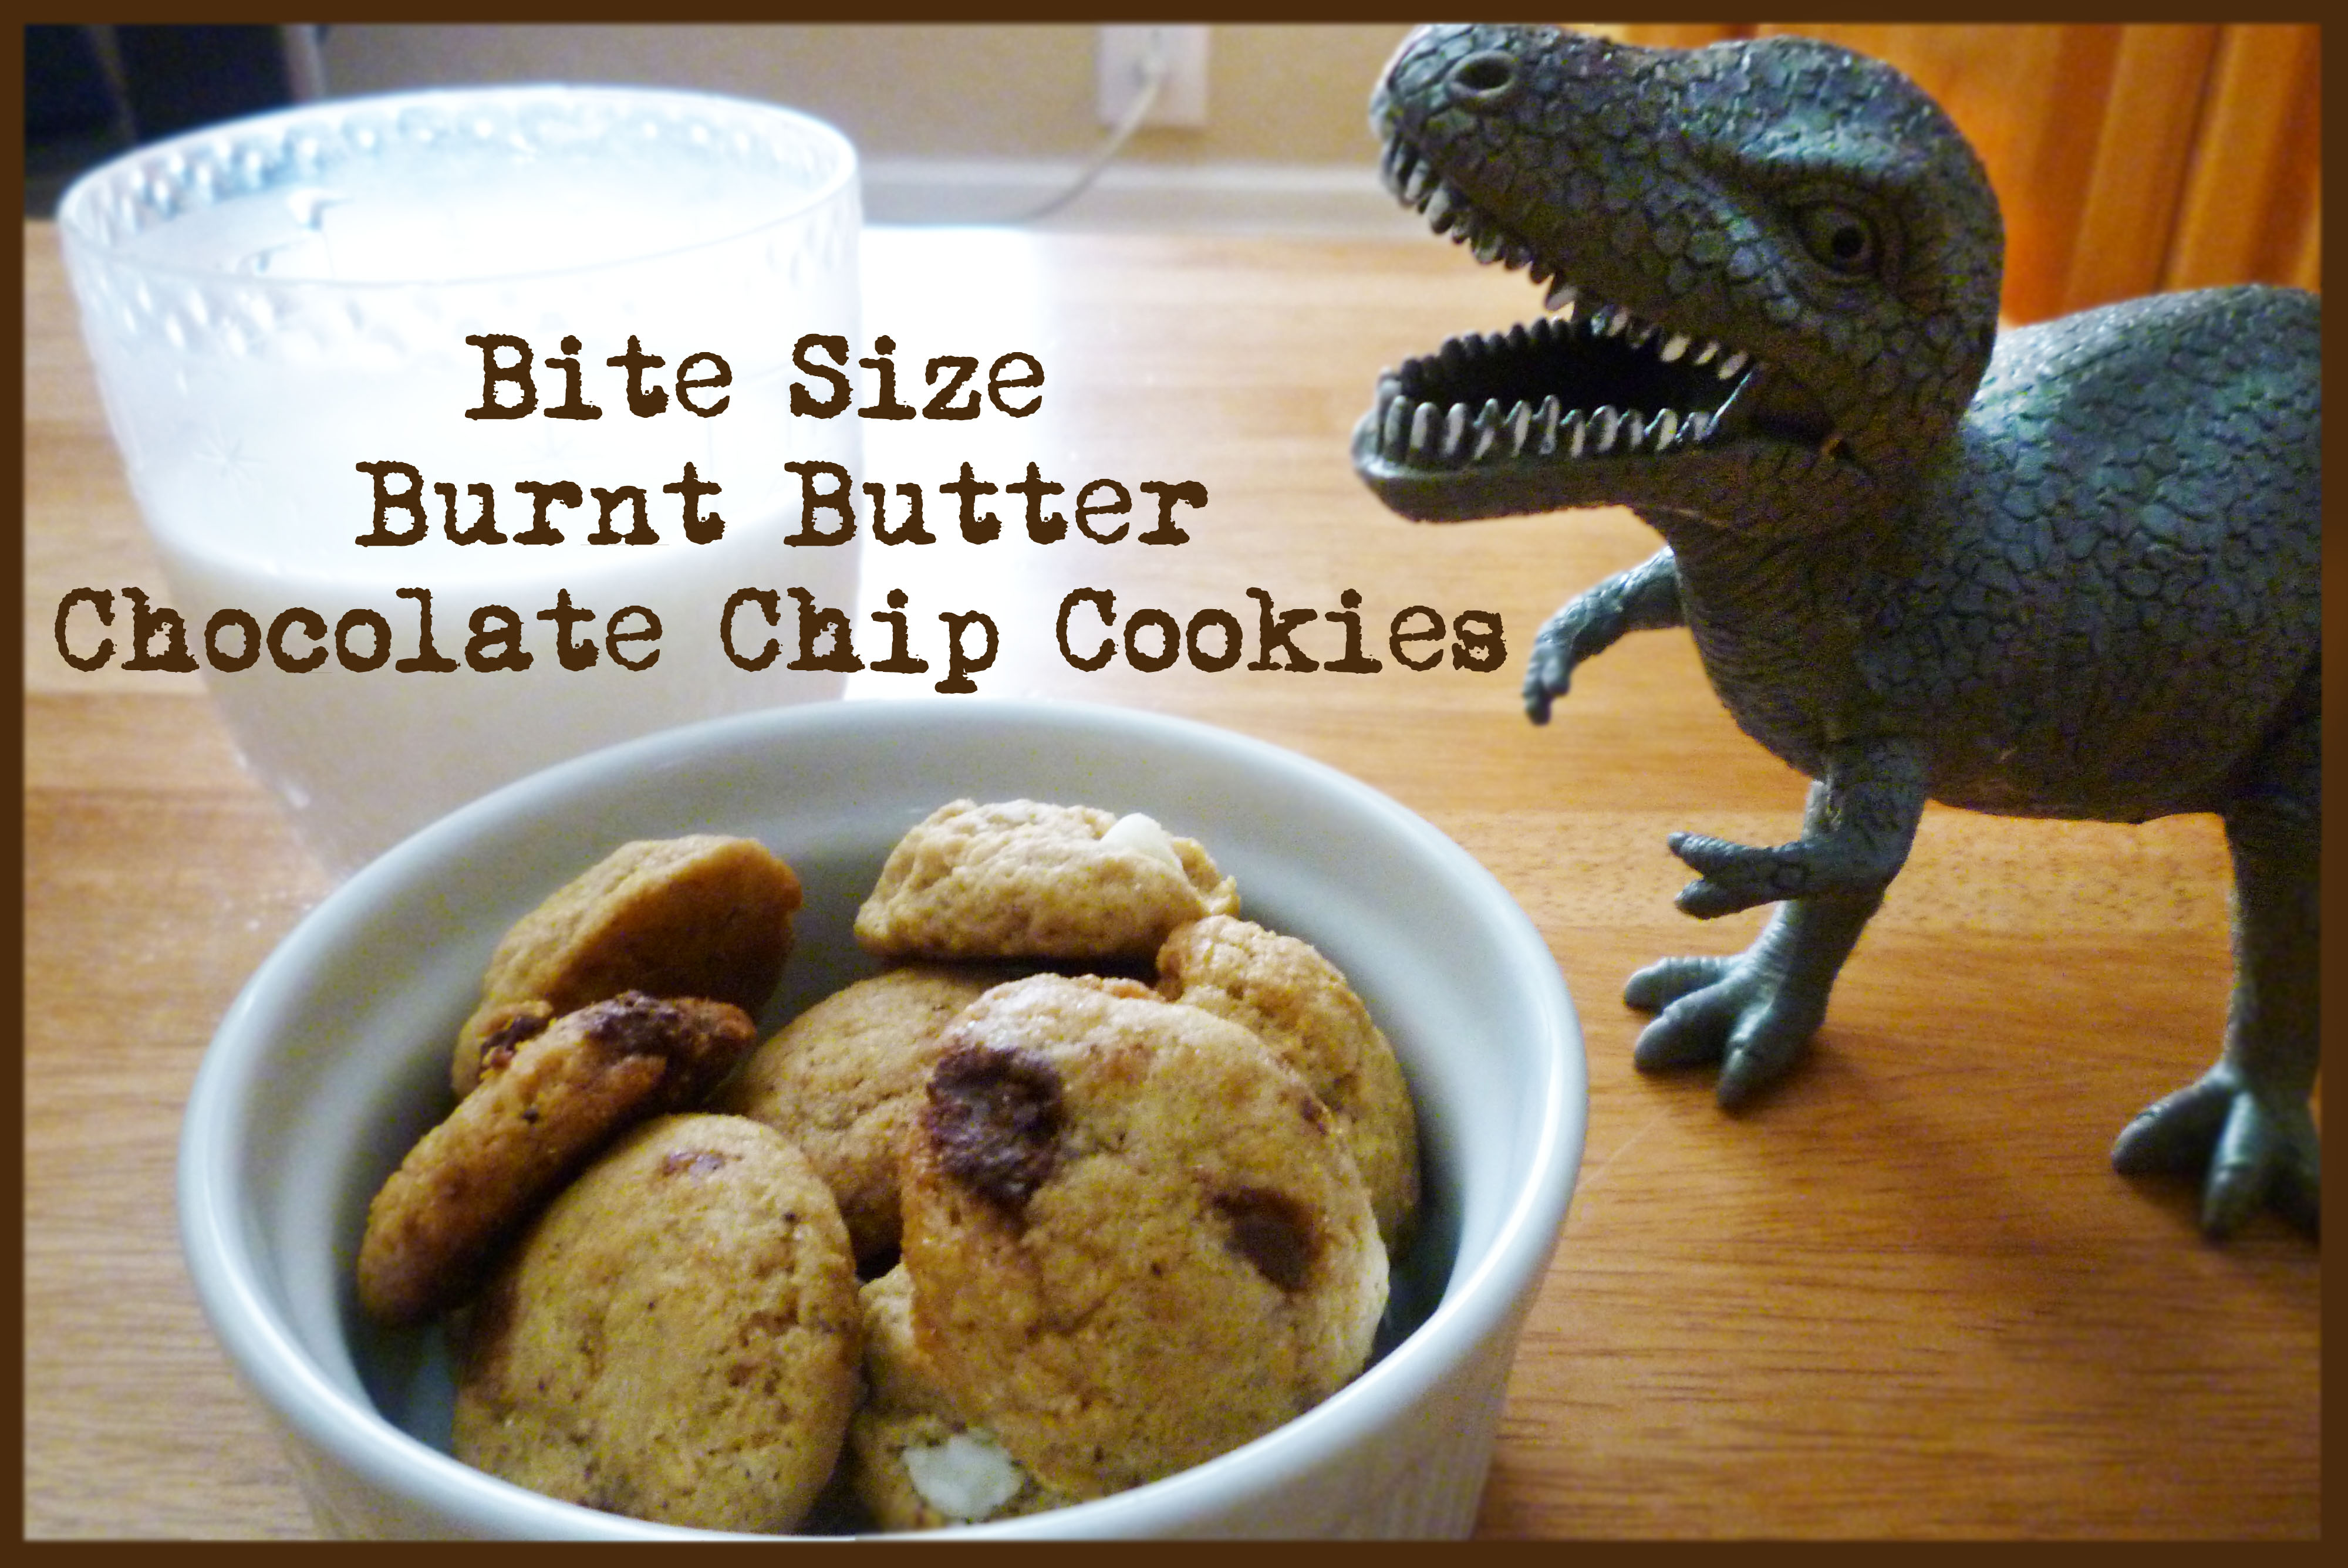 Bite Size Burnt Butter Chocolate Chip Cookies